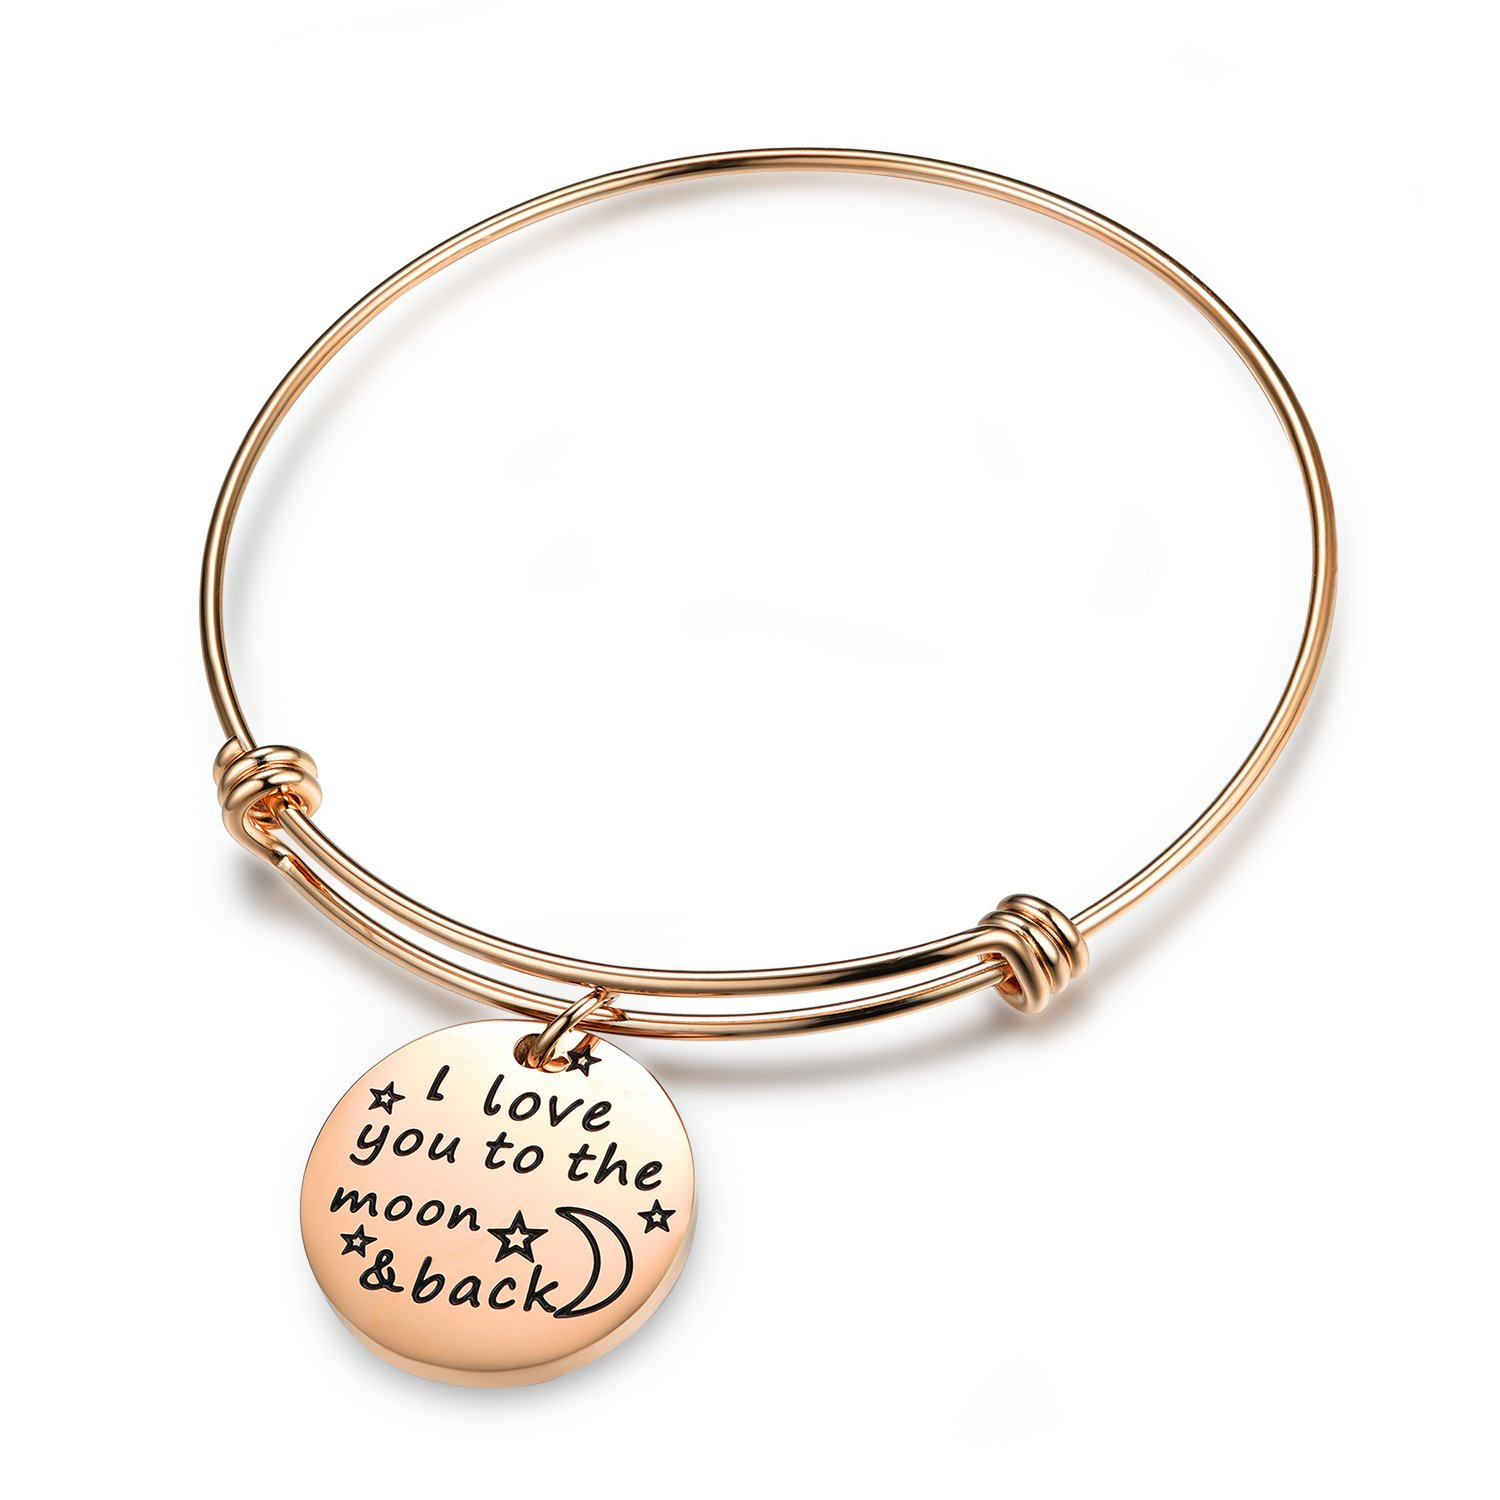 QILMILY Rose Gold Bangle with Charm-I love you to the moon and back Adjustable Wire Bangle Bracelet for Teens Jewelry